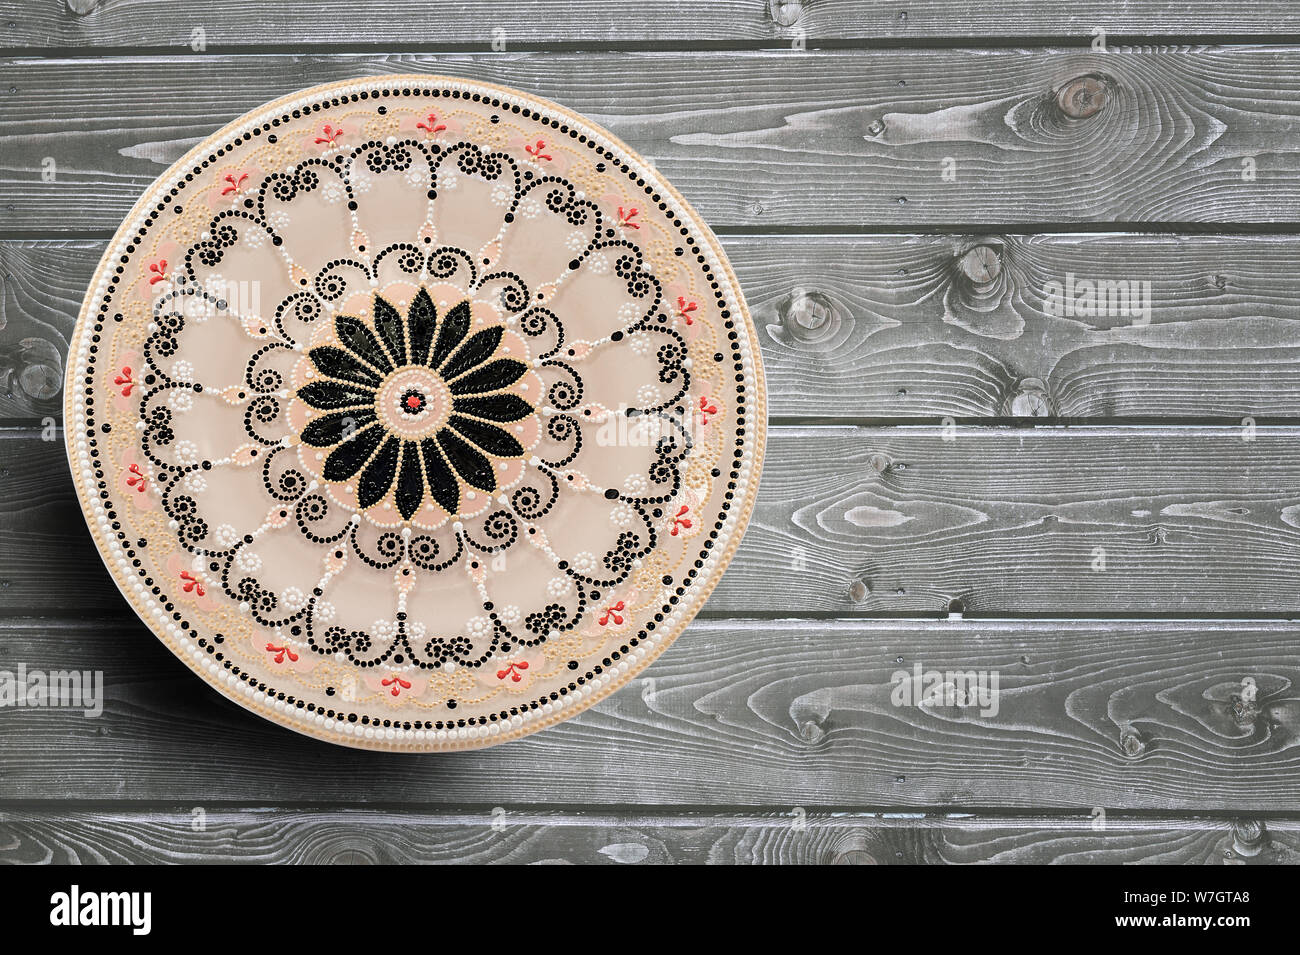 Decorative Ceramic Plate Hand Painted Dot Pattern With Acrylic Paints On A Gray Wooden Background Copy Space Stock Photo Alamy